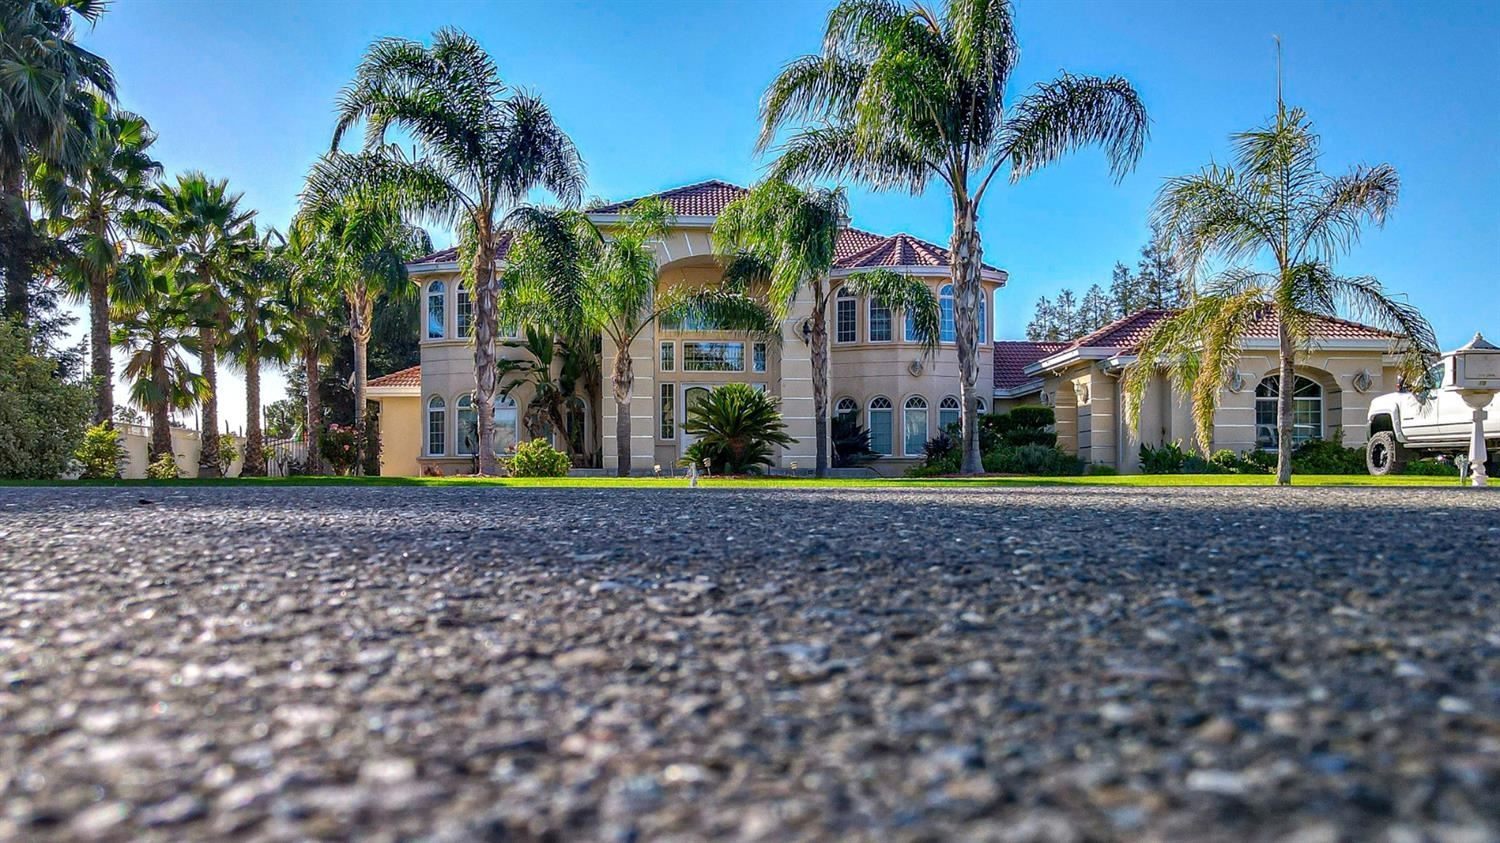 Photo of 1069 Station Avenue, Atwater, CA 95301 (MLS # 221133063)